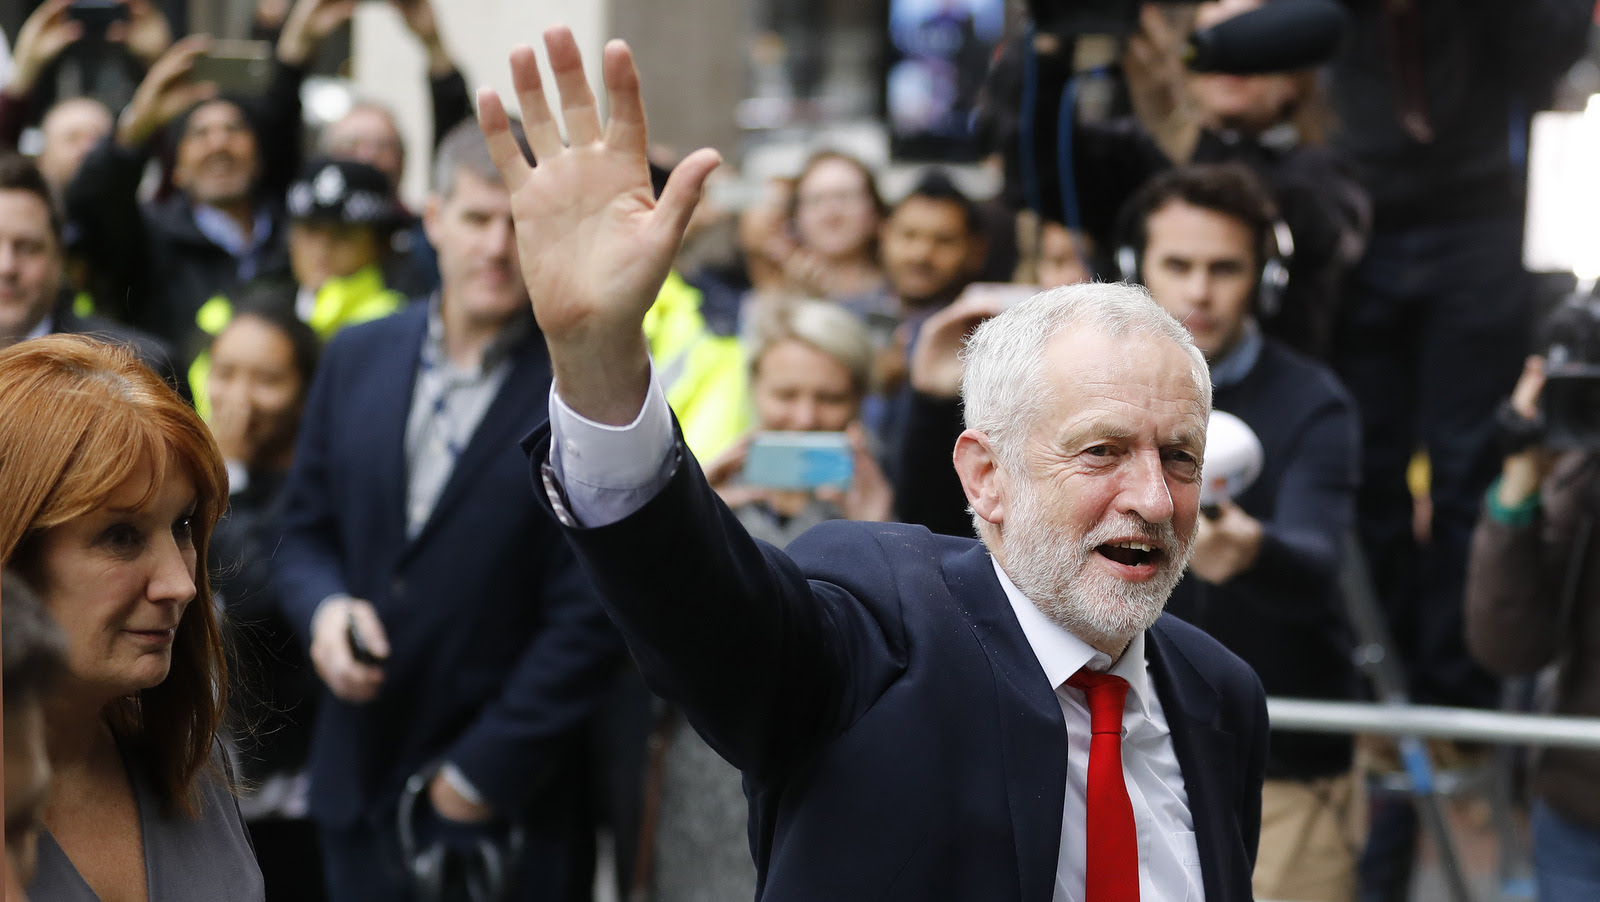 Britain's Labour party leader Jeremy Corbyn waves as he arrives at Labour party headquarters in London, Friday, June 9, 2017. British Prime Minister Theresa May's gamble in calling an early election backfired spectacularly, as her Conservative Party lost its majority in Parliament and pressure mounted on her Friday to resign. (AP/Frank Augstein)